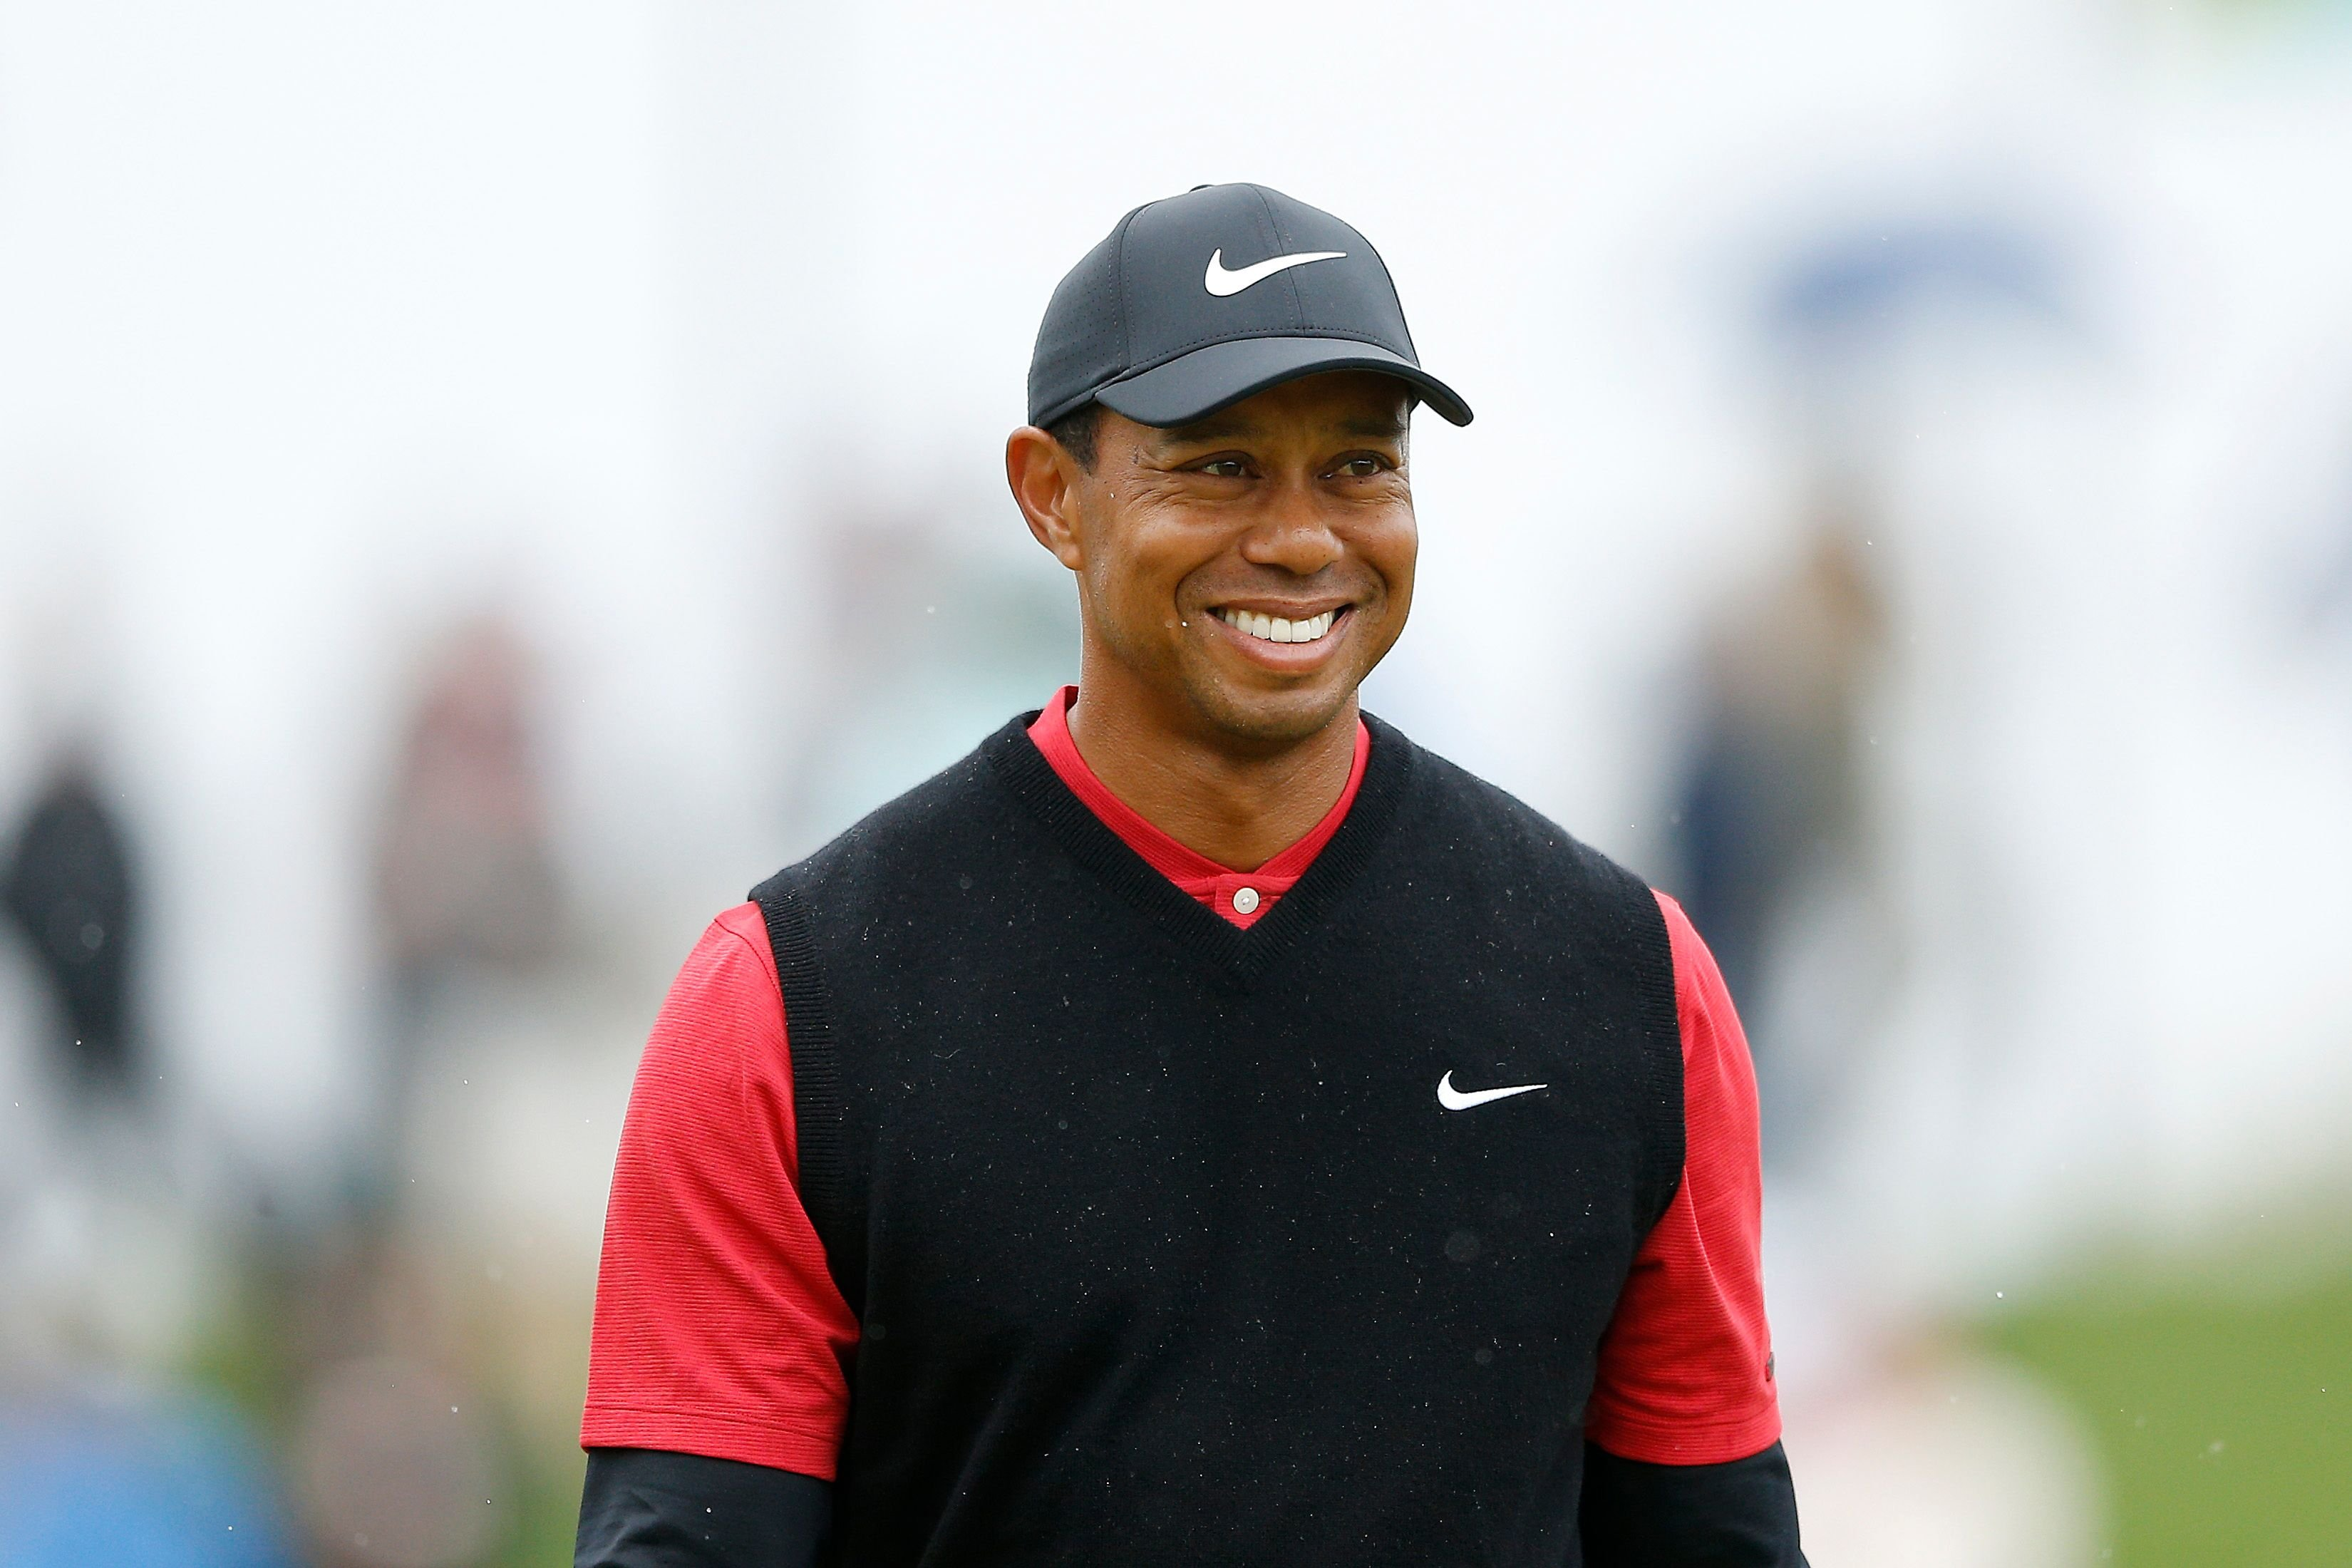 Tiger Woods during the final round of The PLAYERS Championship on The Stadium Course at TPC Sawgrass on March 17, 2019   Photo: Getty Images